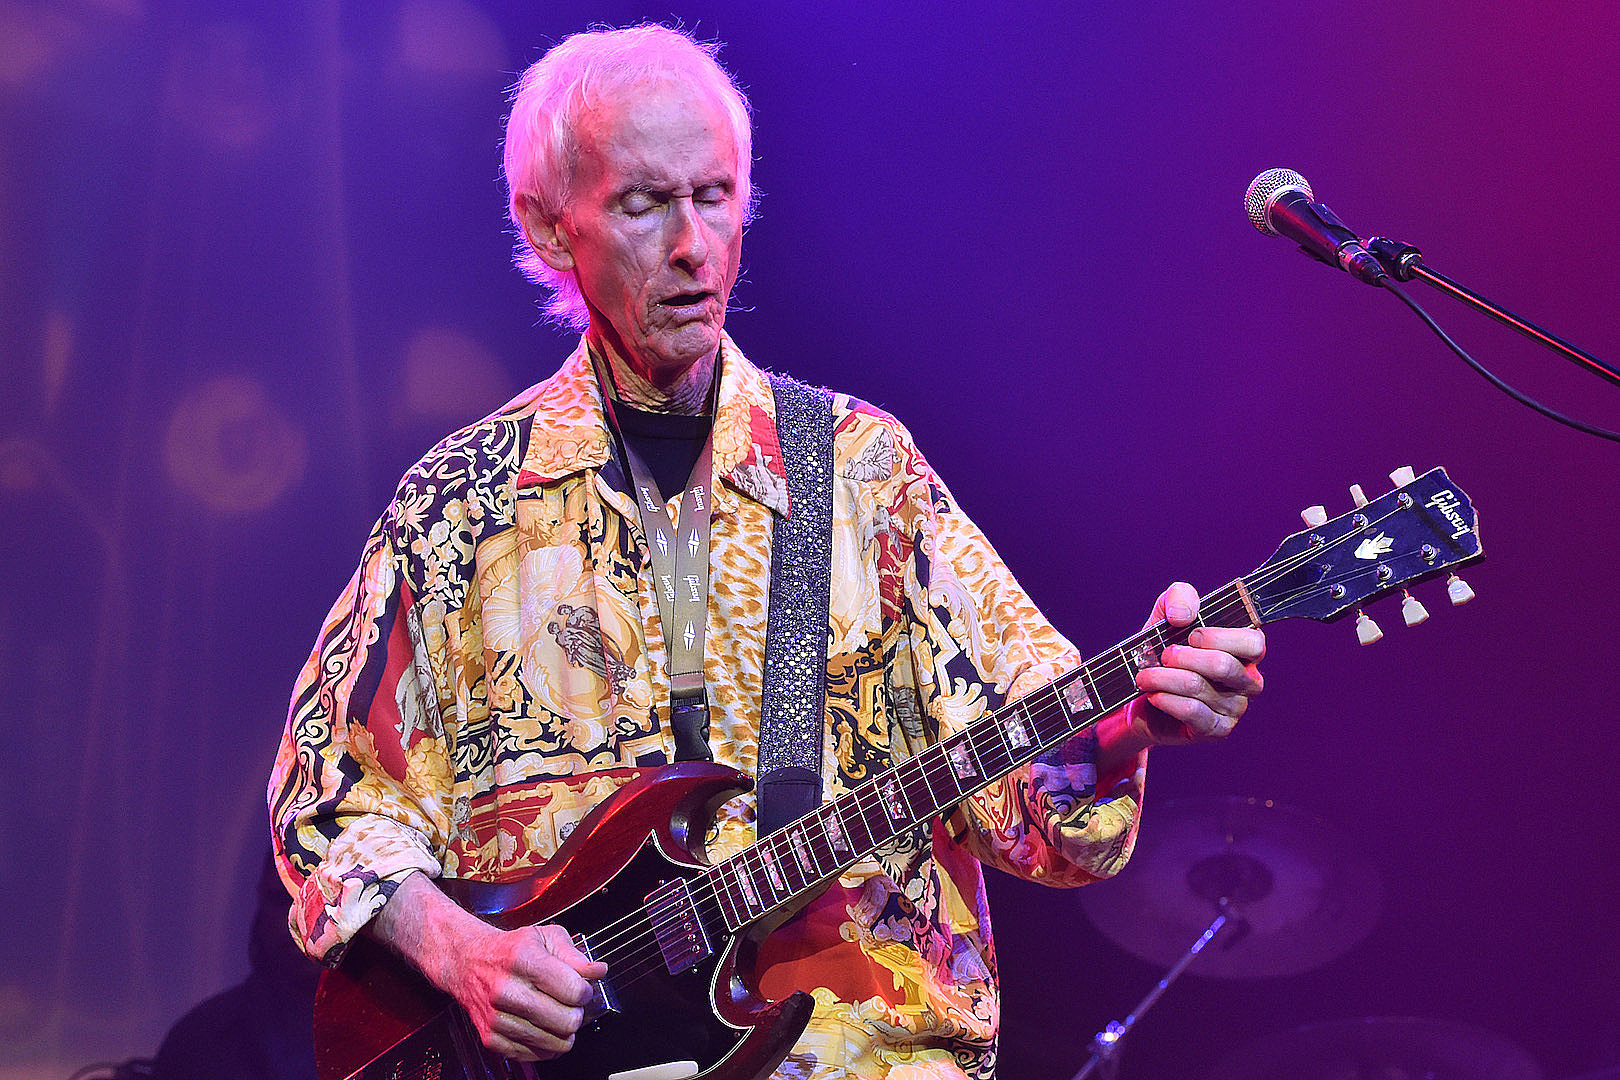 Watch the Doors' Robby Krieger Play His Favorite Guitar Riffs